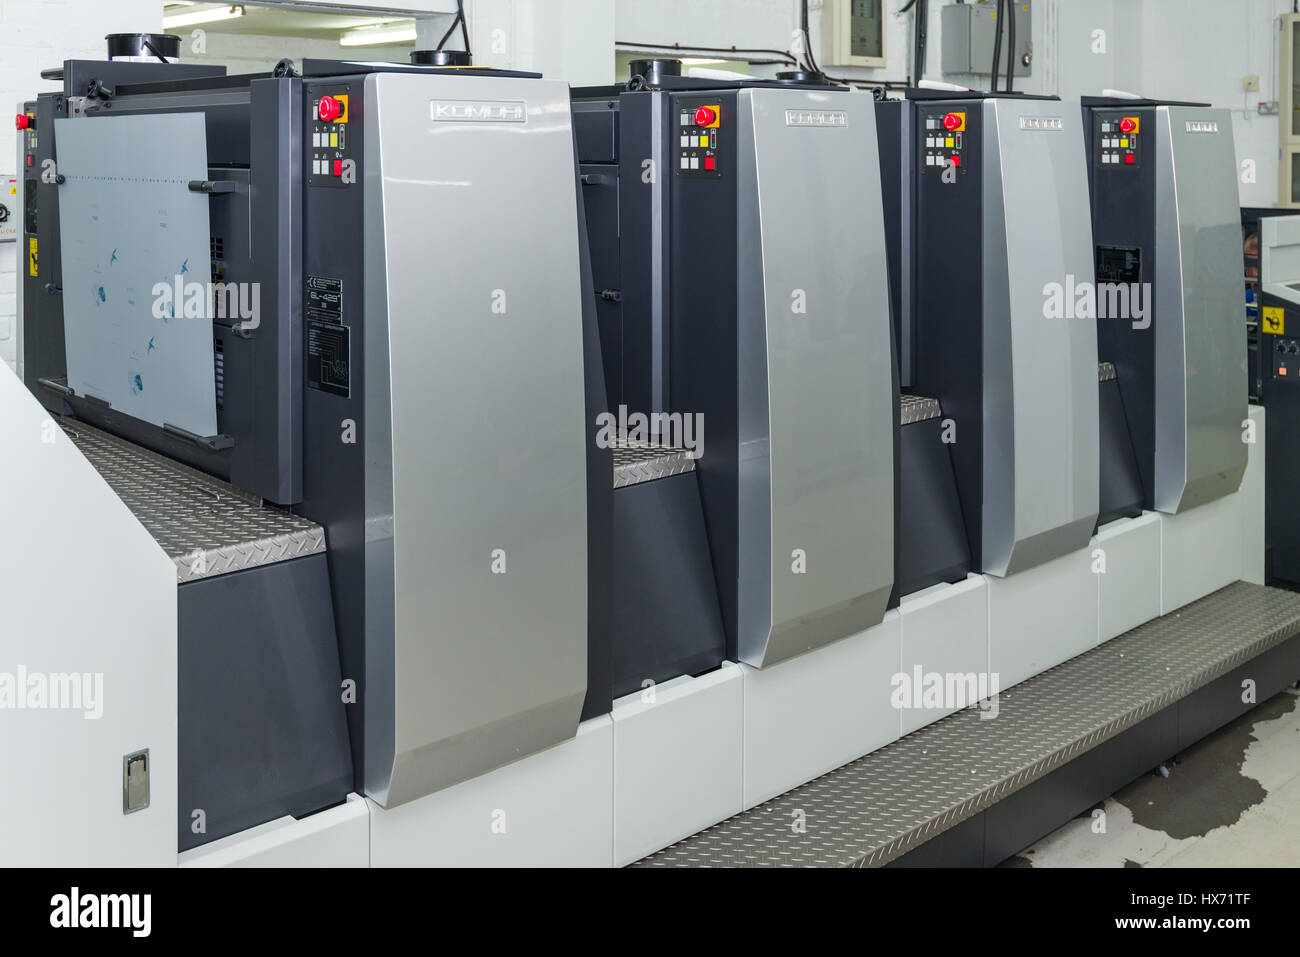 Komori Lithrone G29 Offset Printing Press - Stock Image